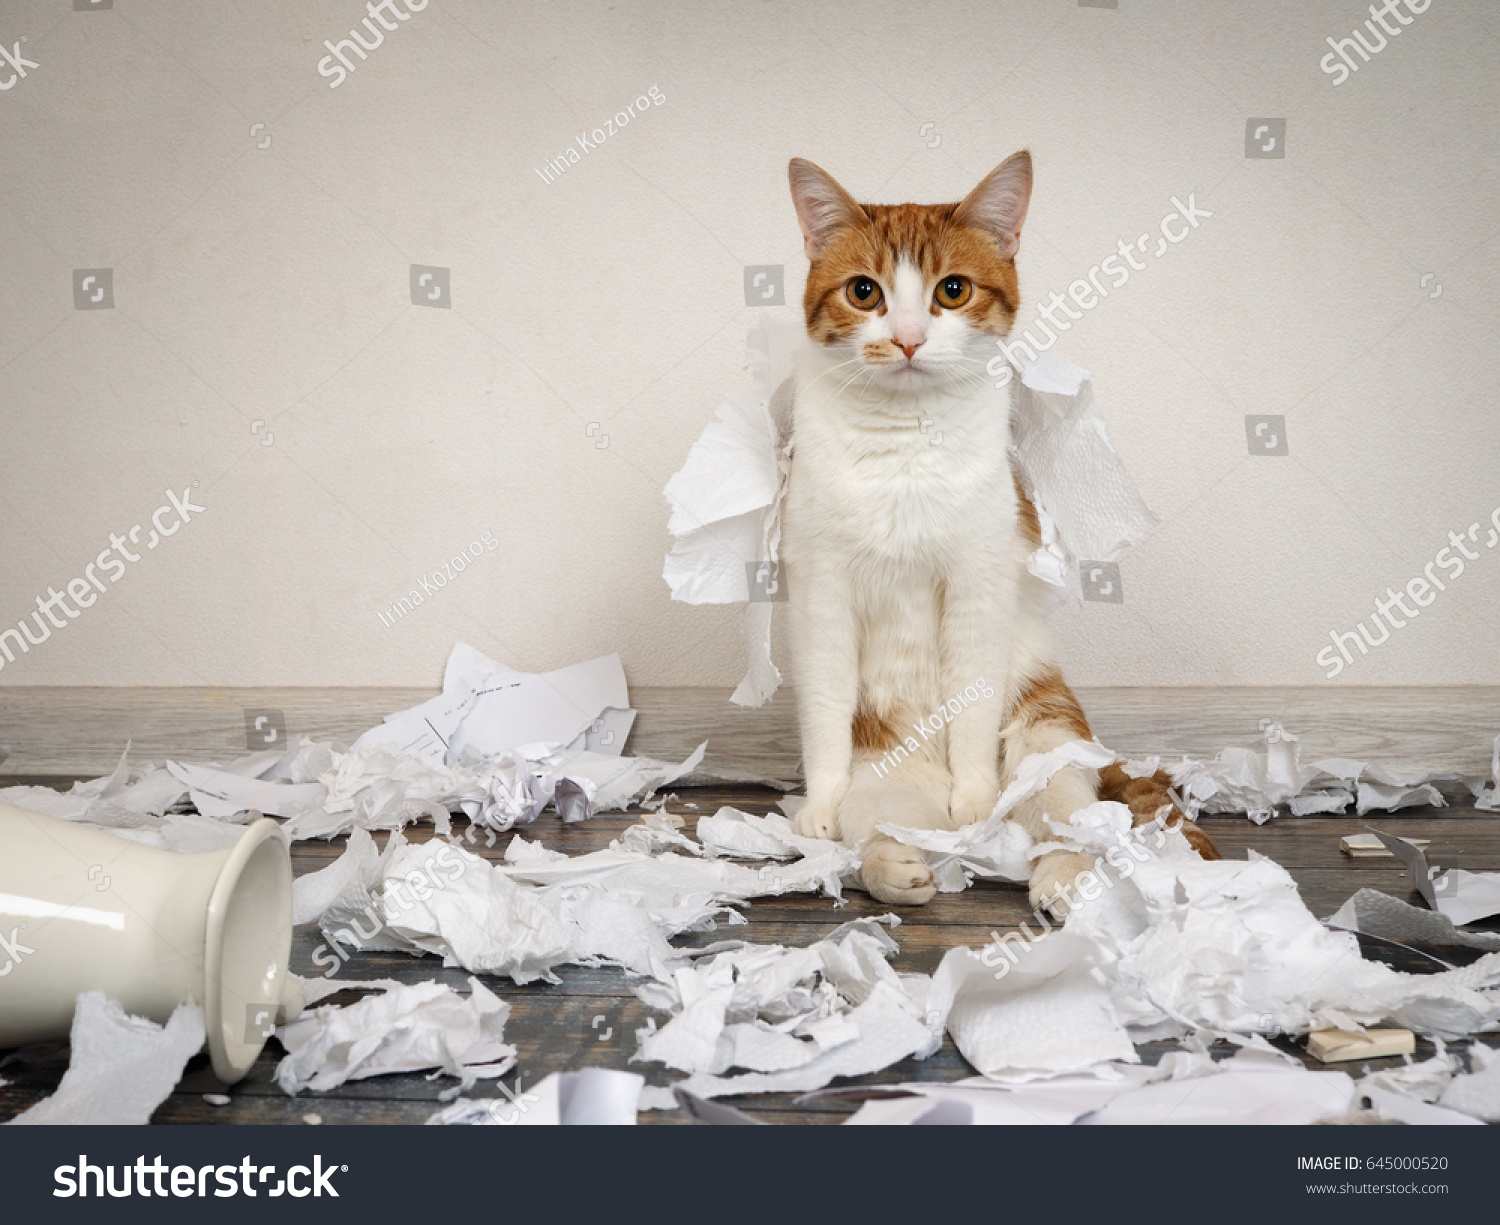 Funny cat made mess tore paper funny cat made a mess tore up paper voltagebd Gallery